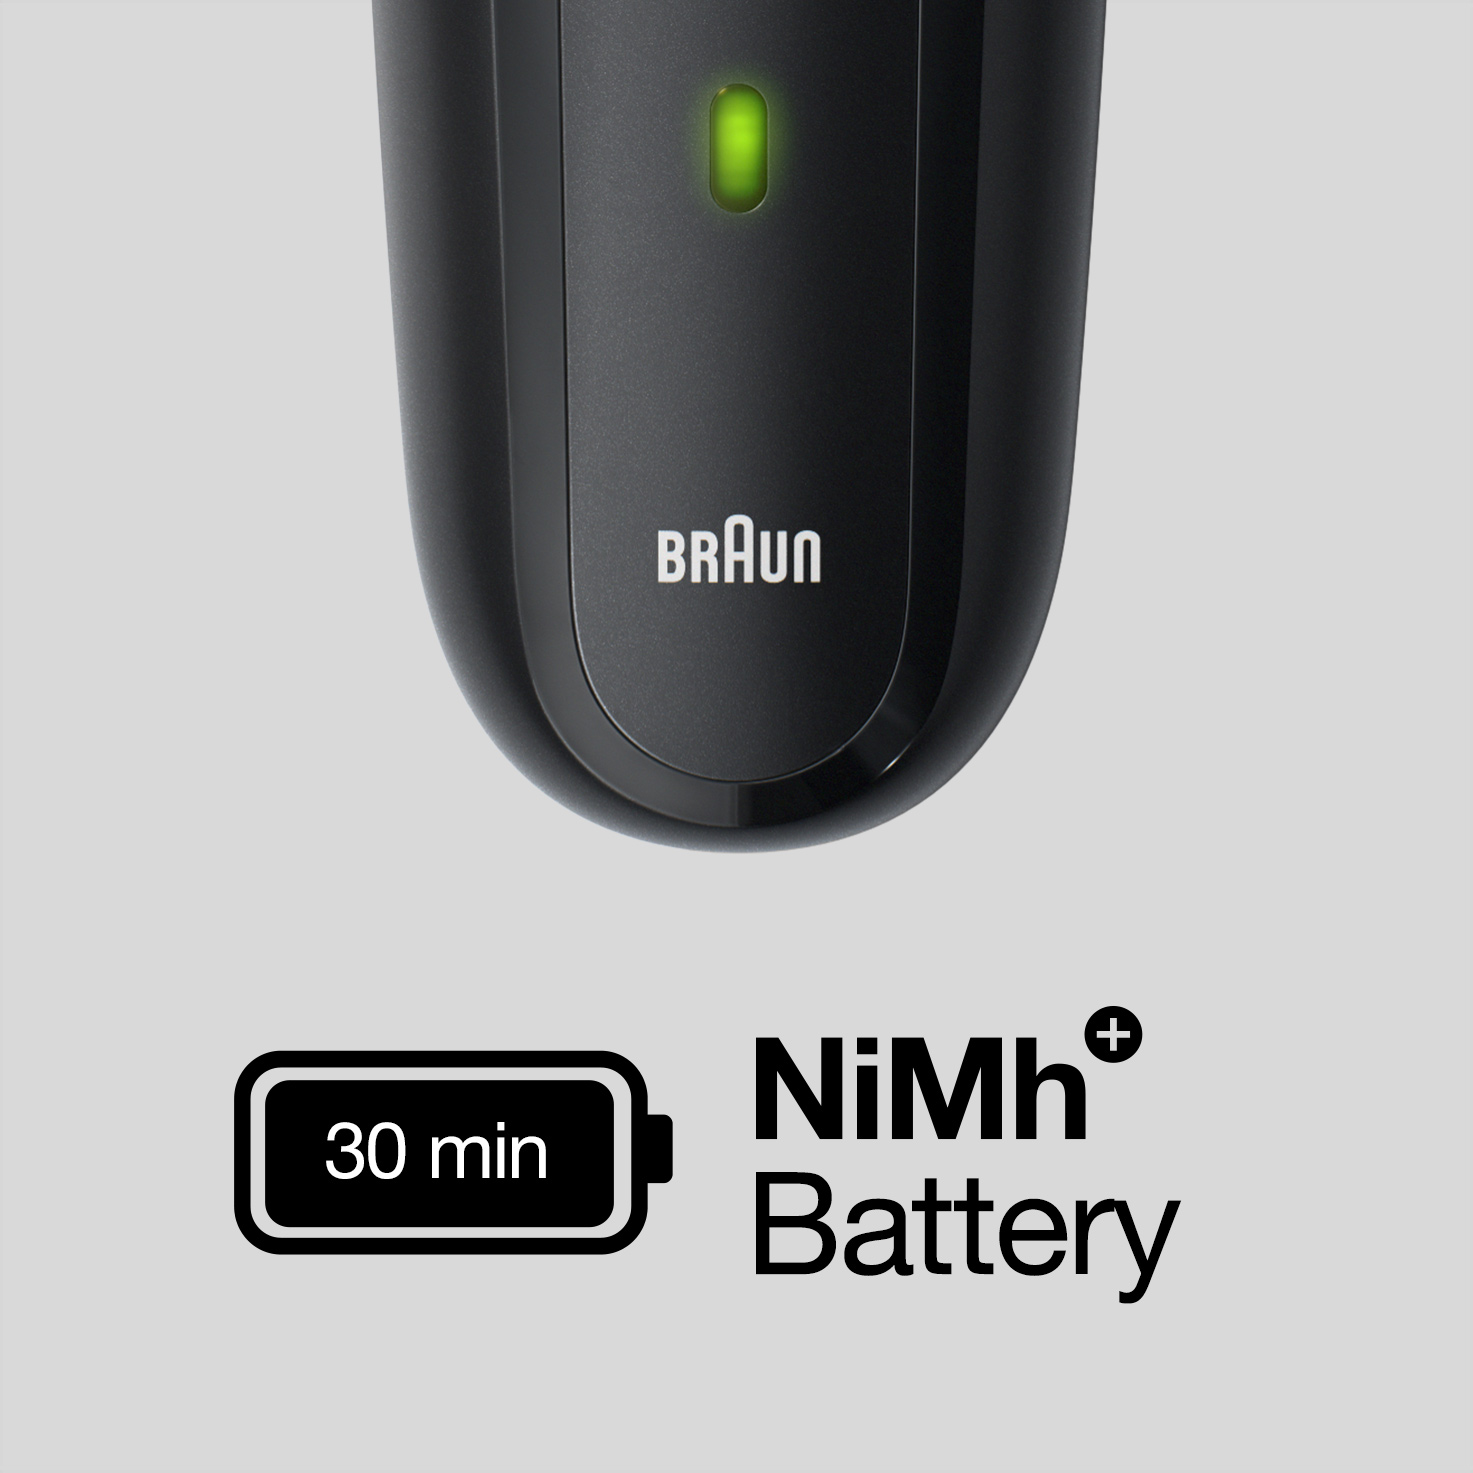 Powerful NiMh battery